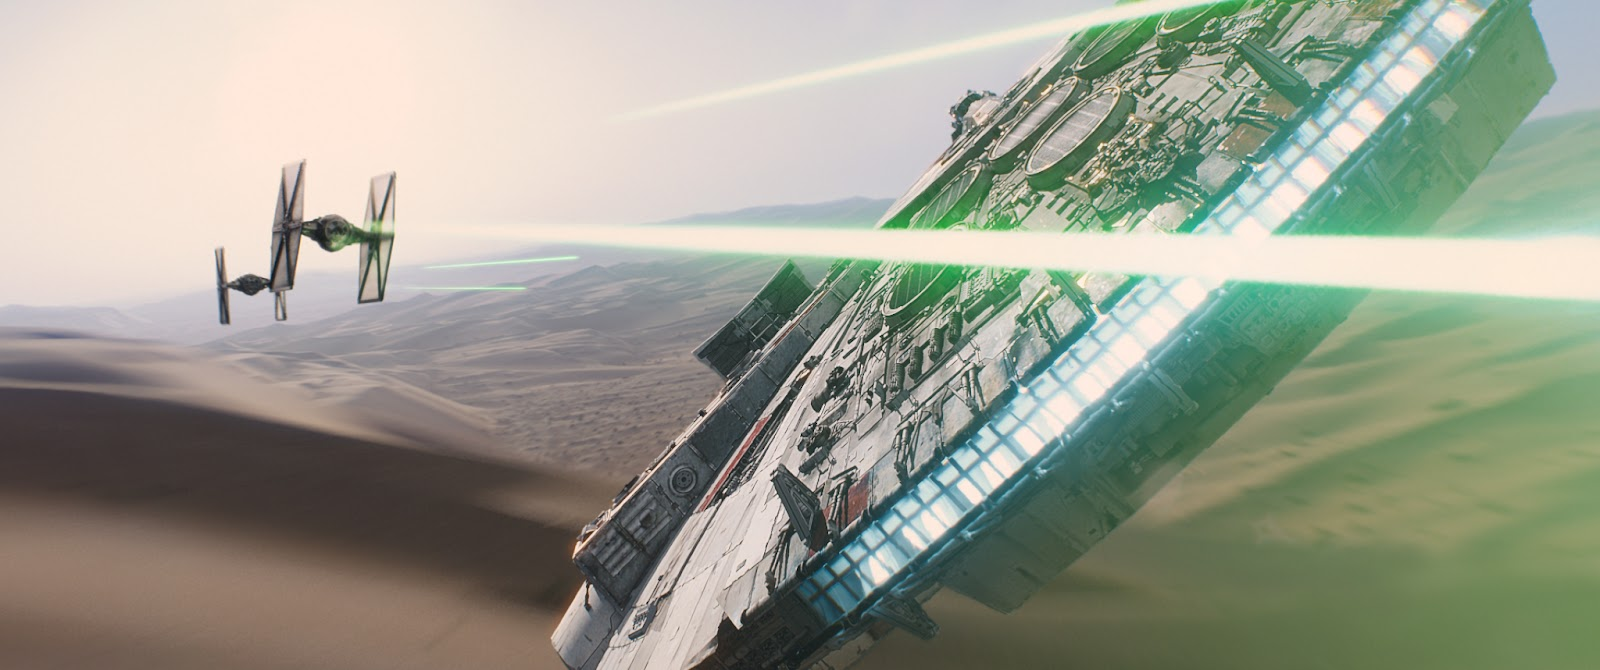 Star Wars: The Force Awakens Millennium Falcon vs Tie Fighters over Tatooine